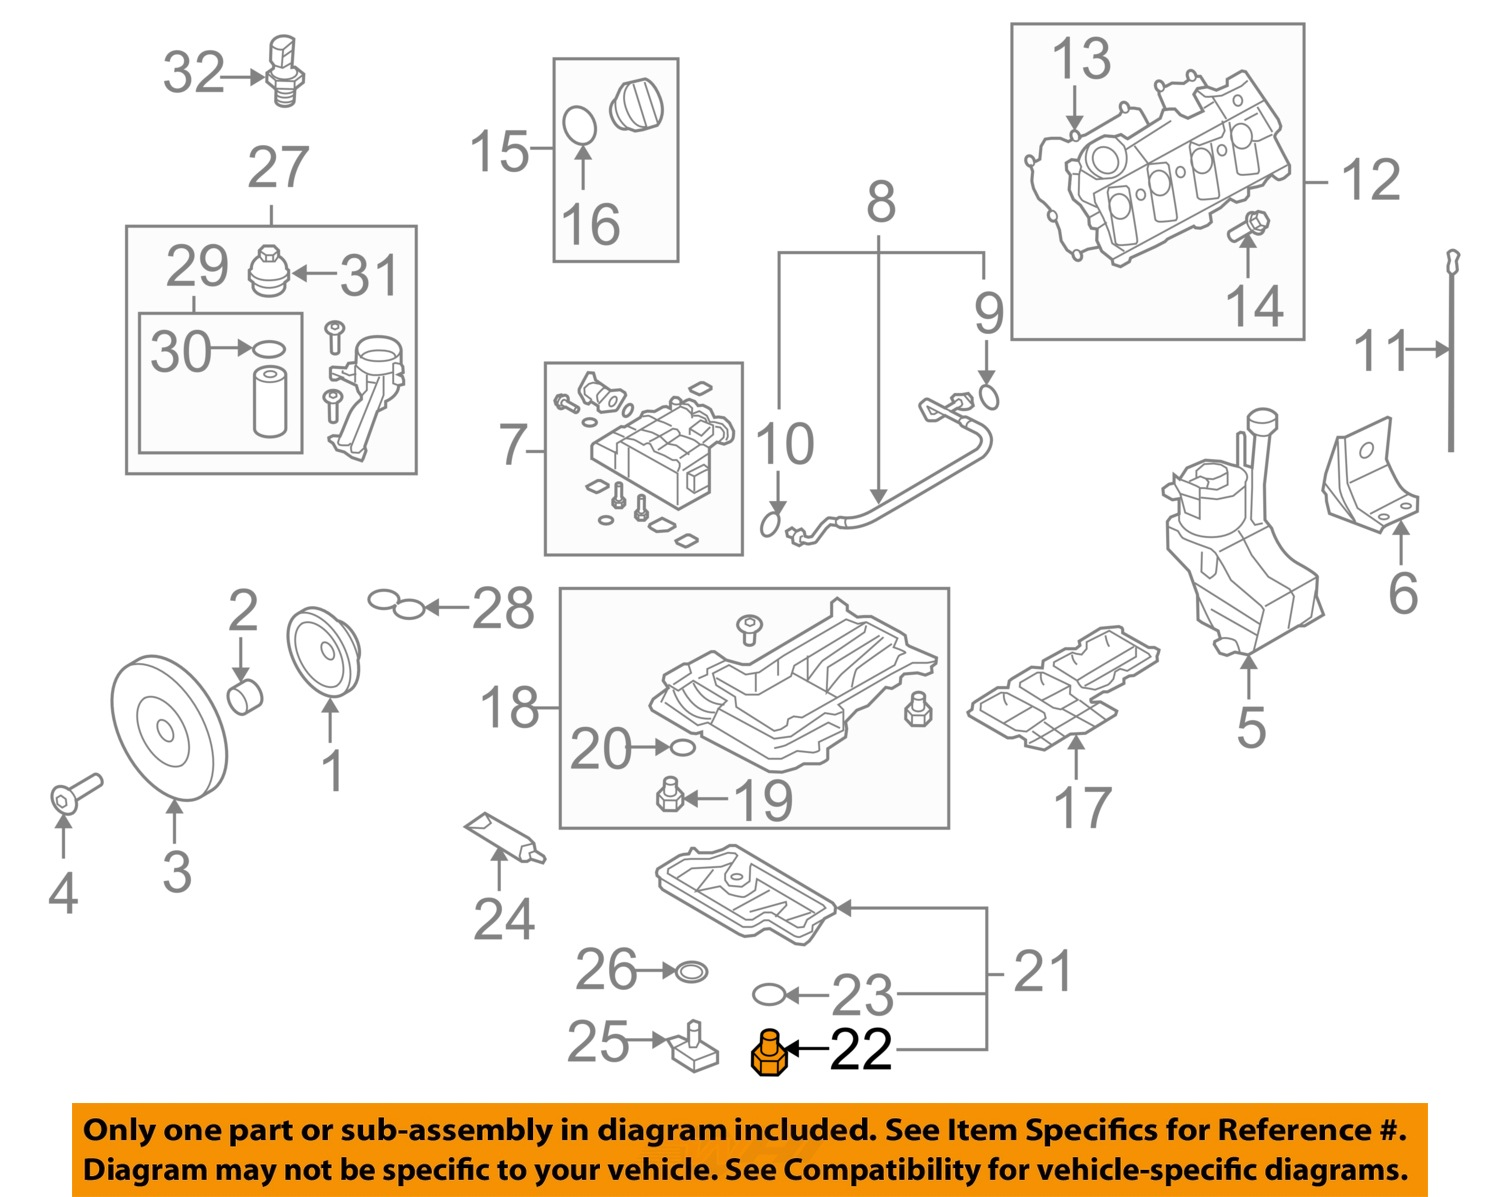 2001 Ford F350 V10 Fuse Box Diagram Simple Guide About Wiring F250 V1 0 Engine Speed Sensor